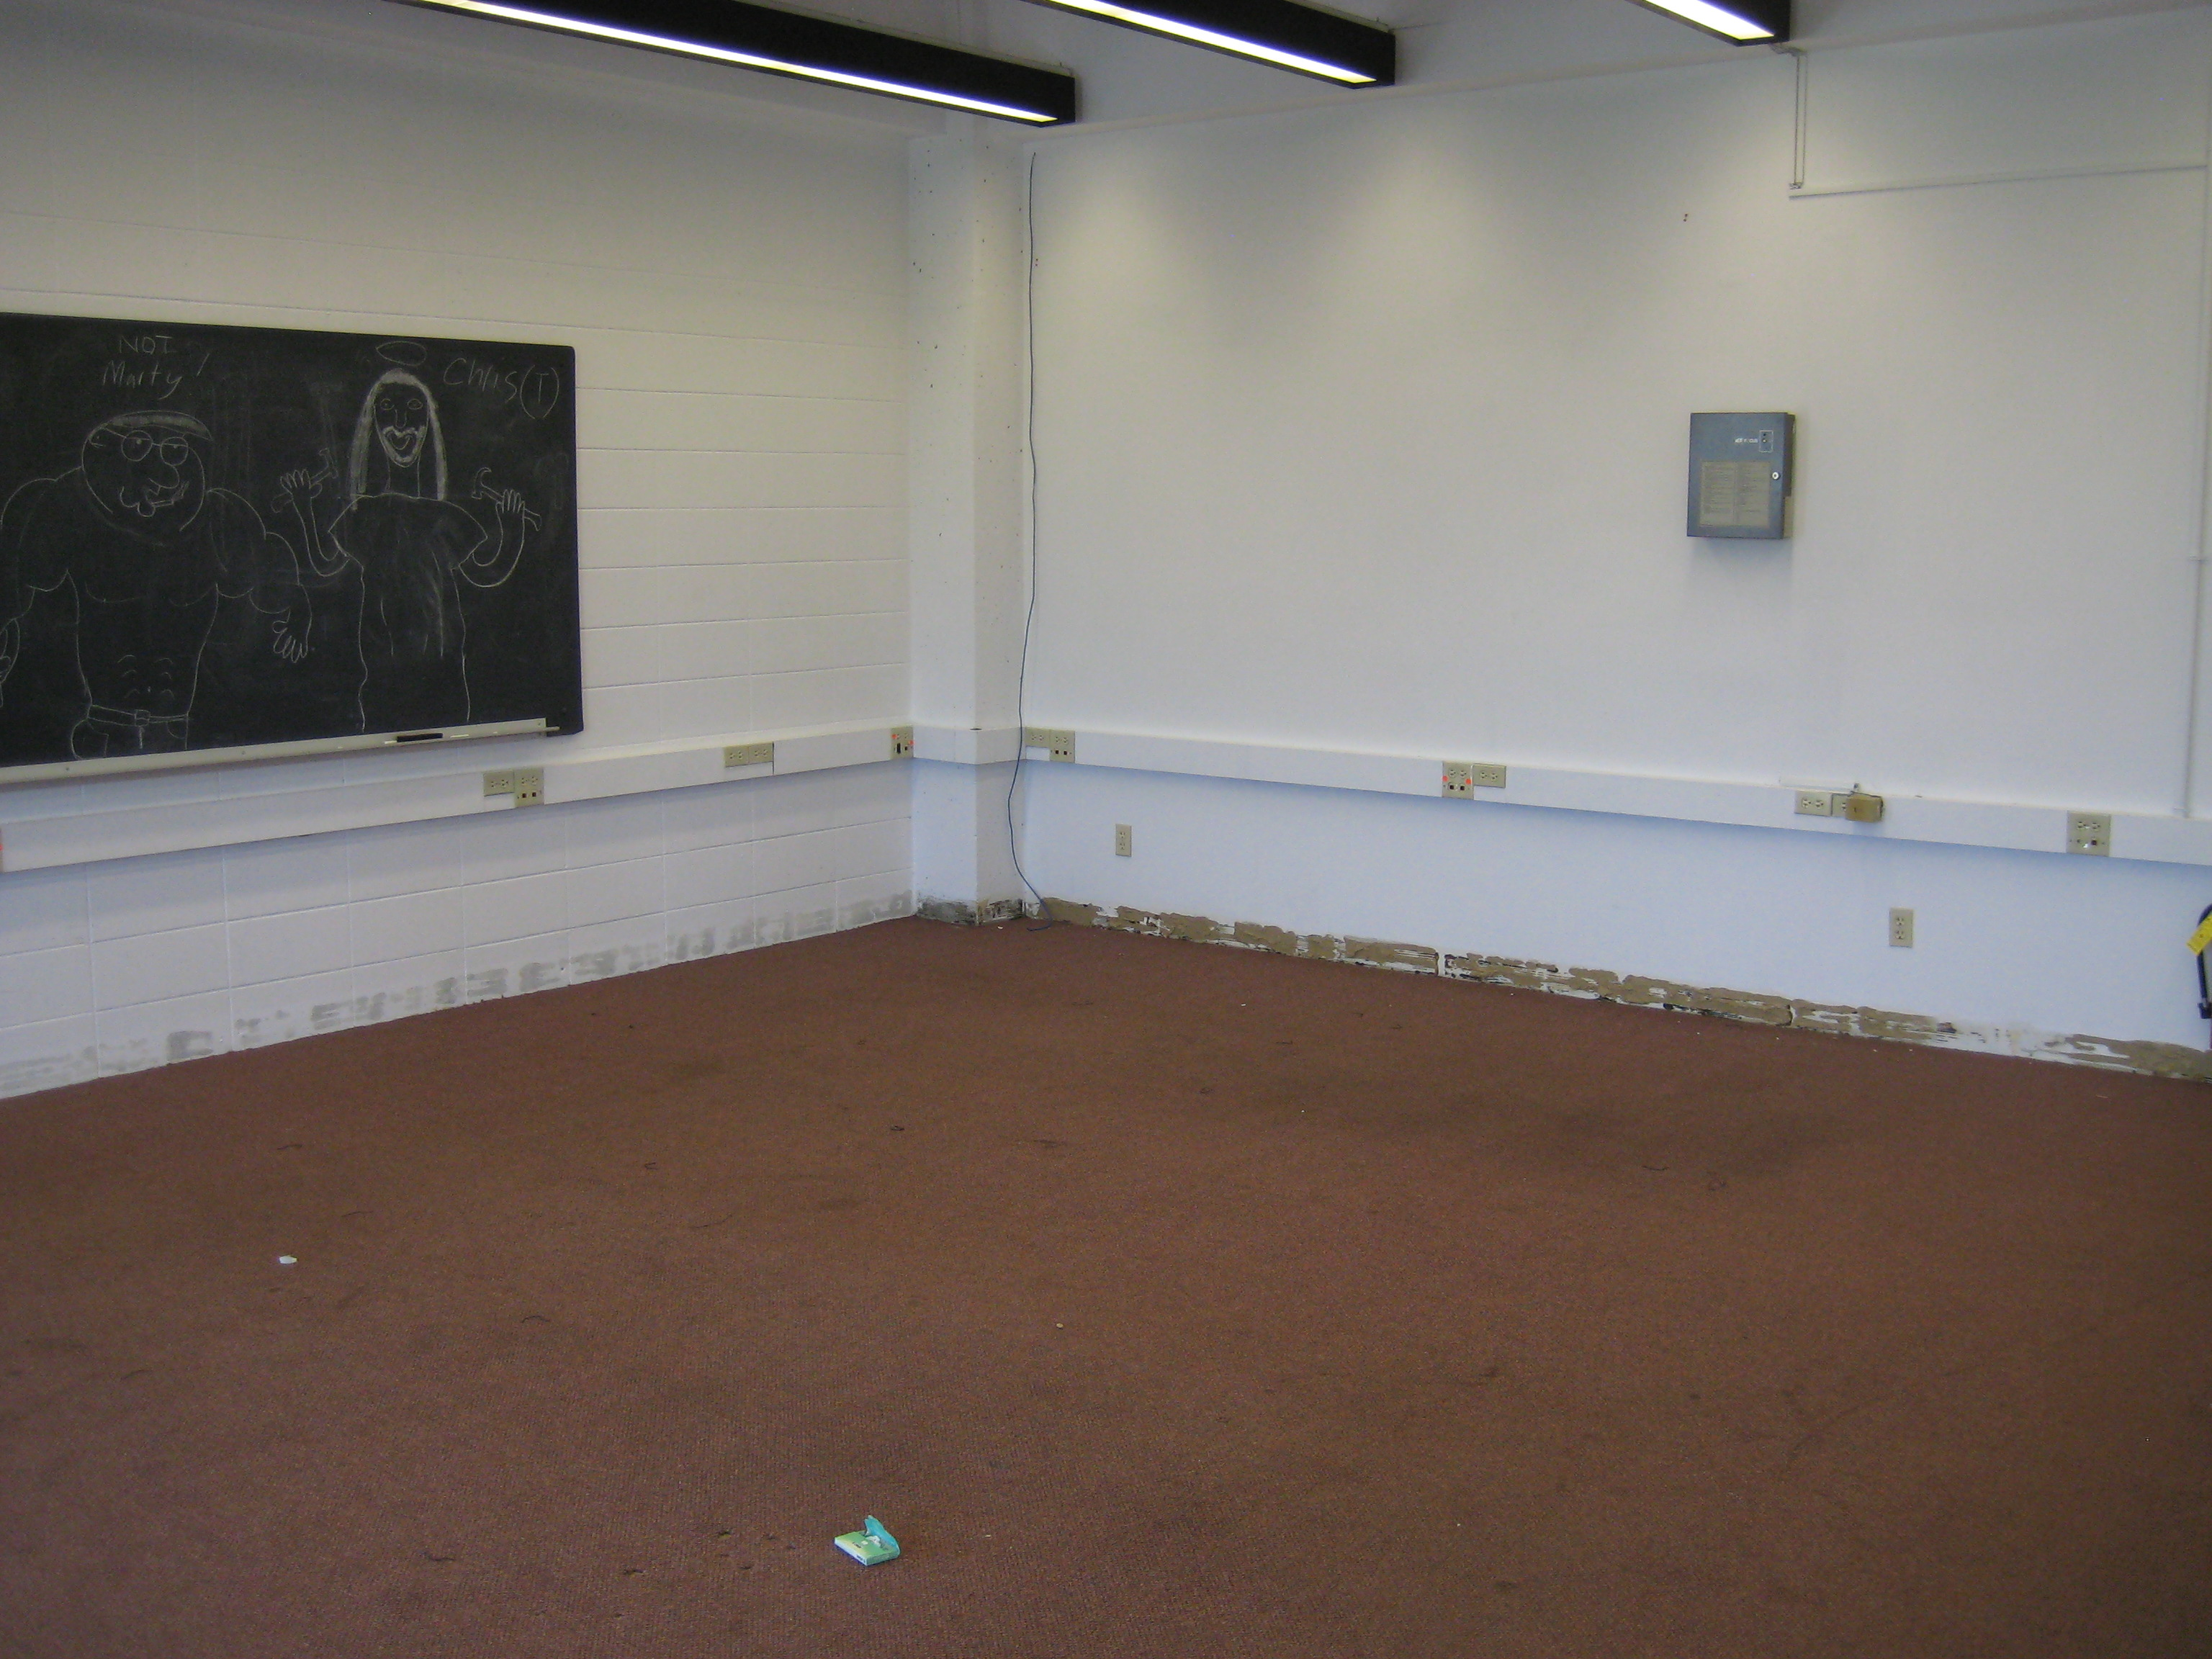 the training room all emptied out.